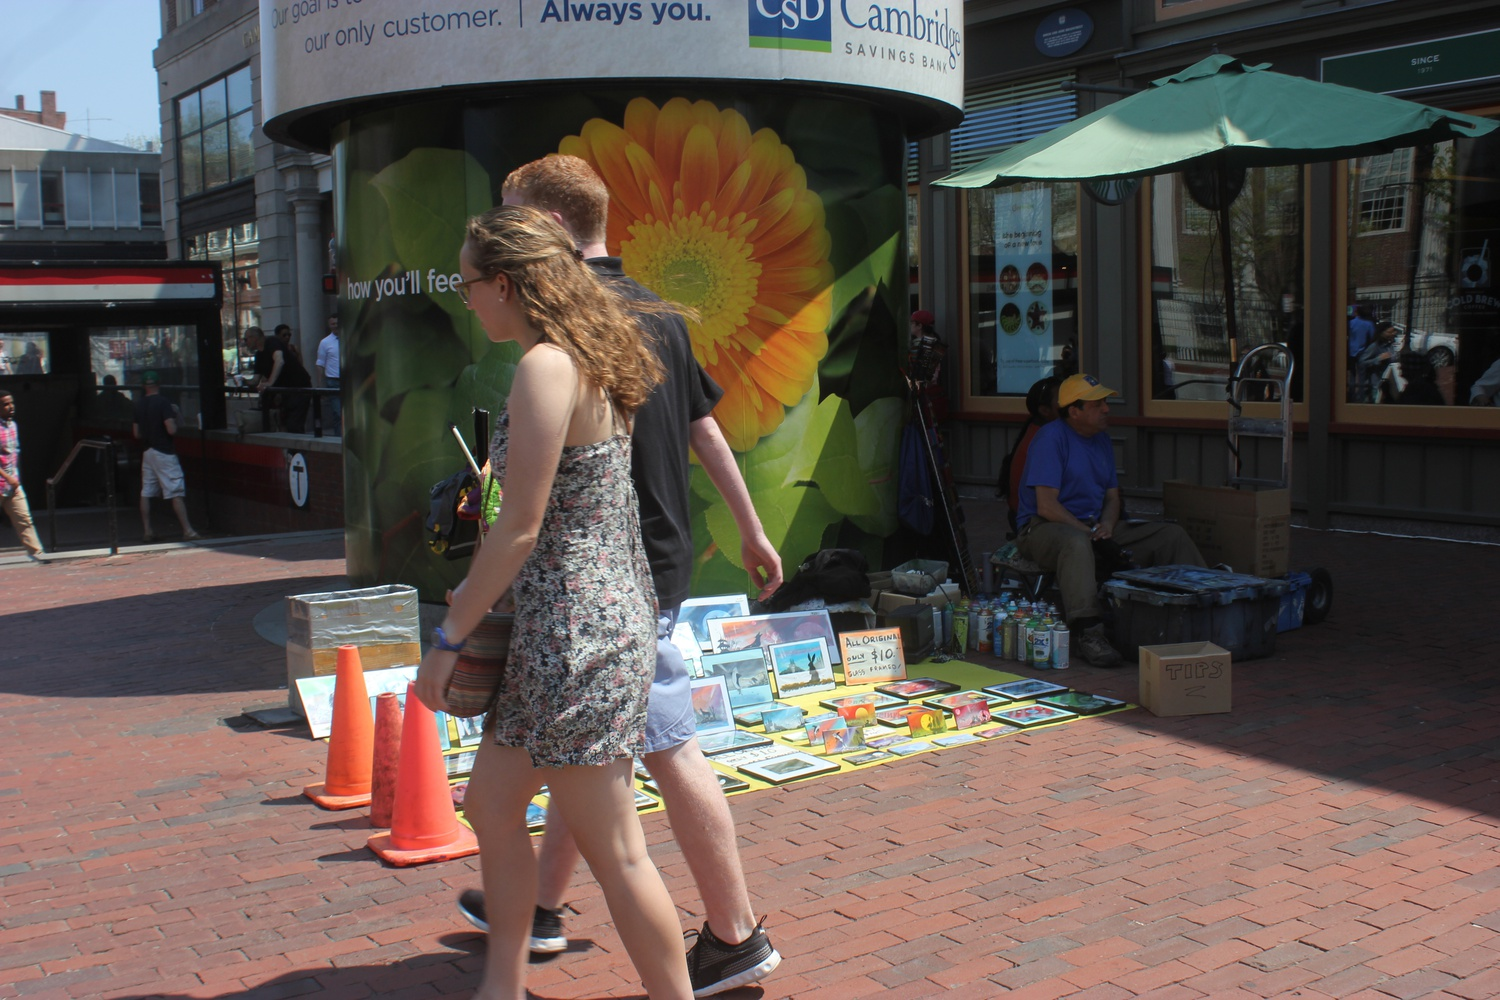 Visitors to Harvard Square start showing up in summer clothing as the weather warms.